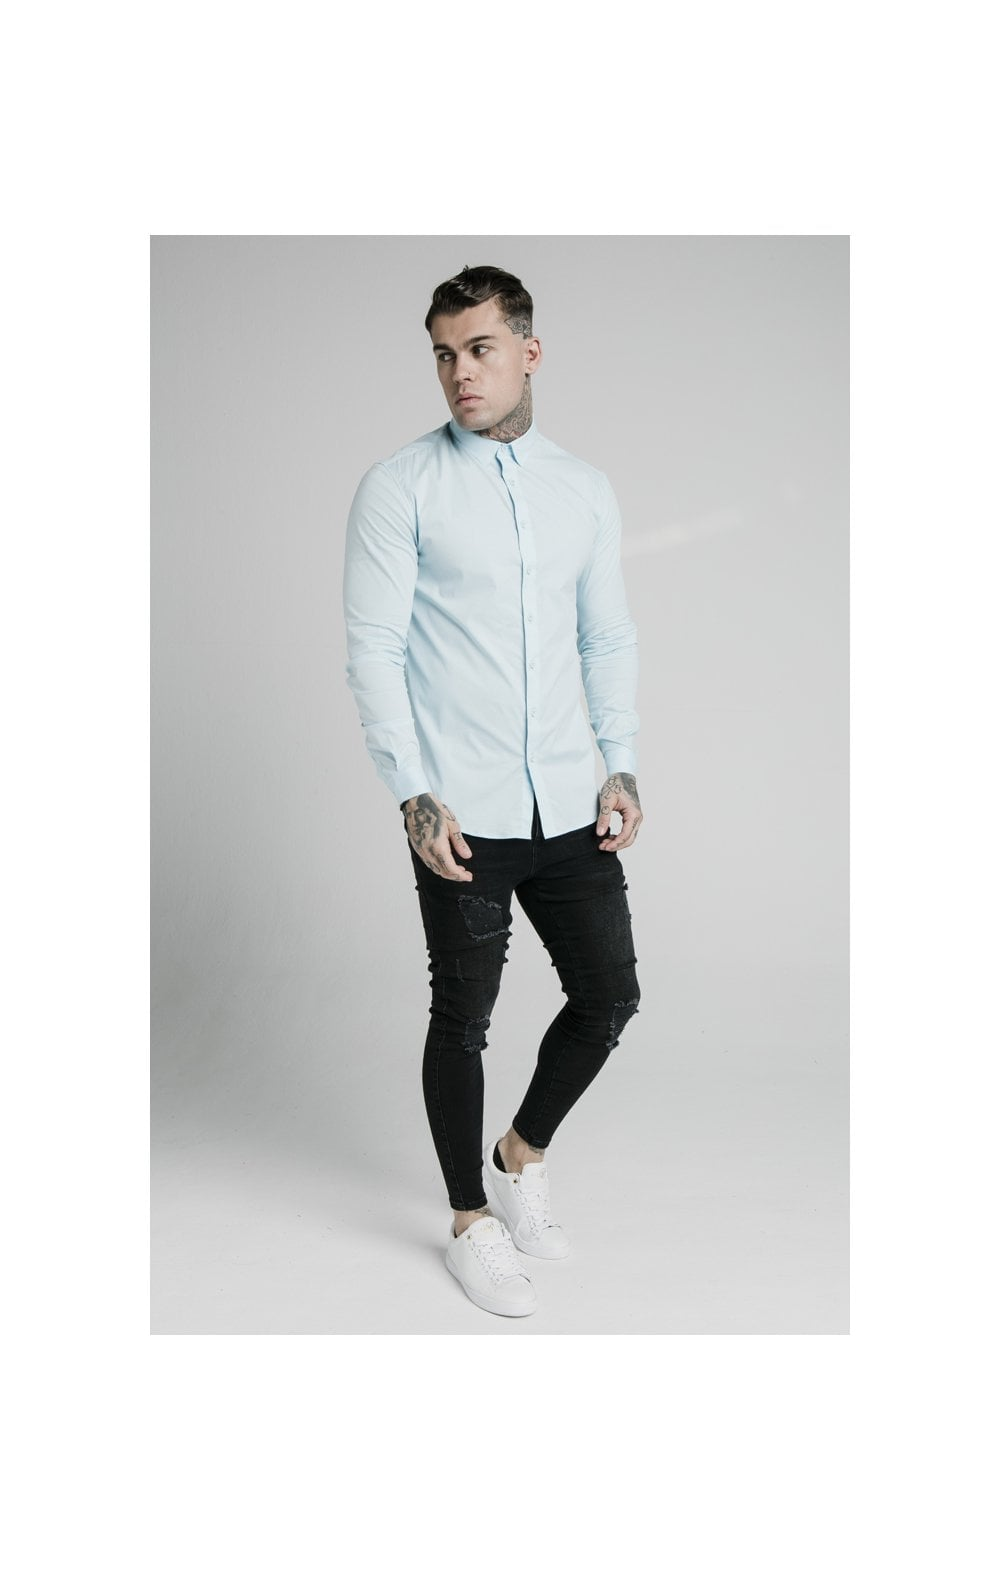 Load image into Gallery viewer, SikSilk L/S Cotton Stretch Shirt - Light Blue (4)